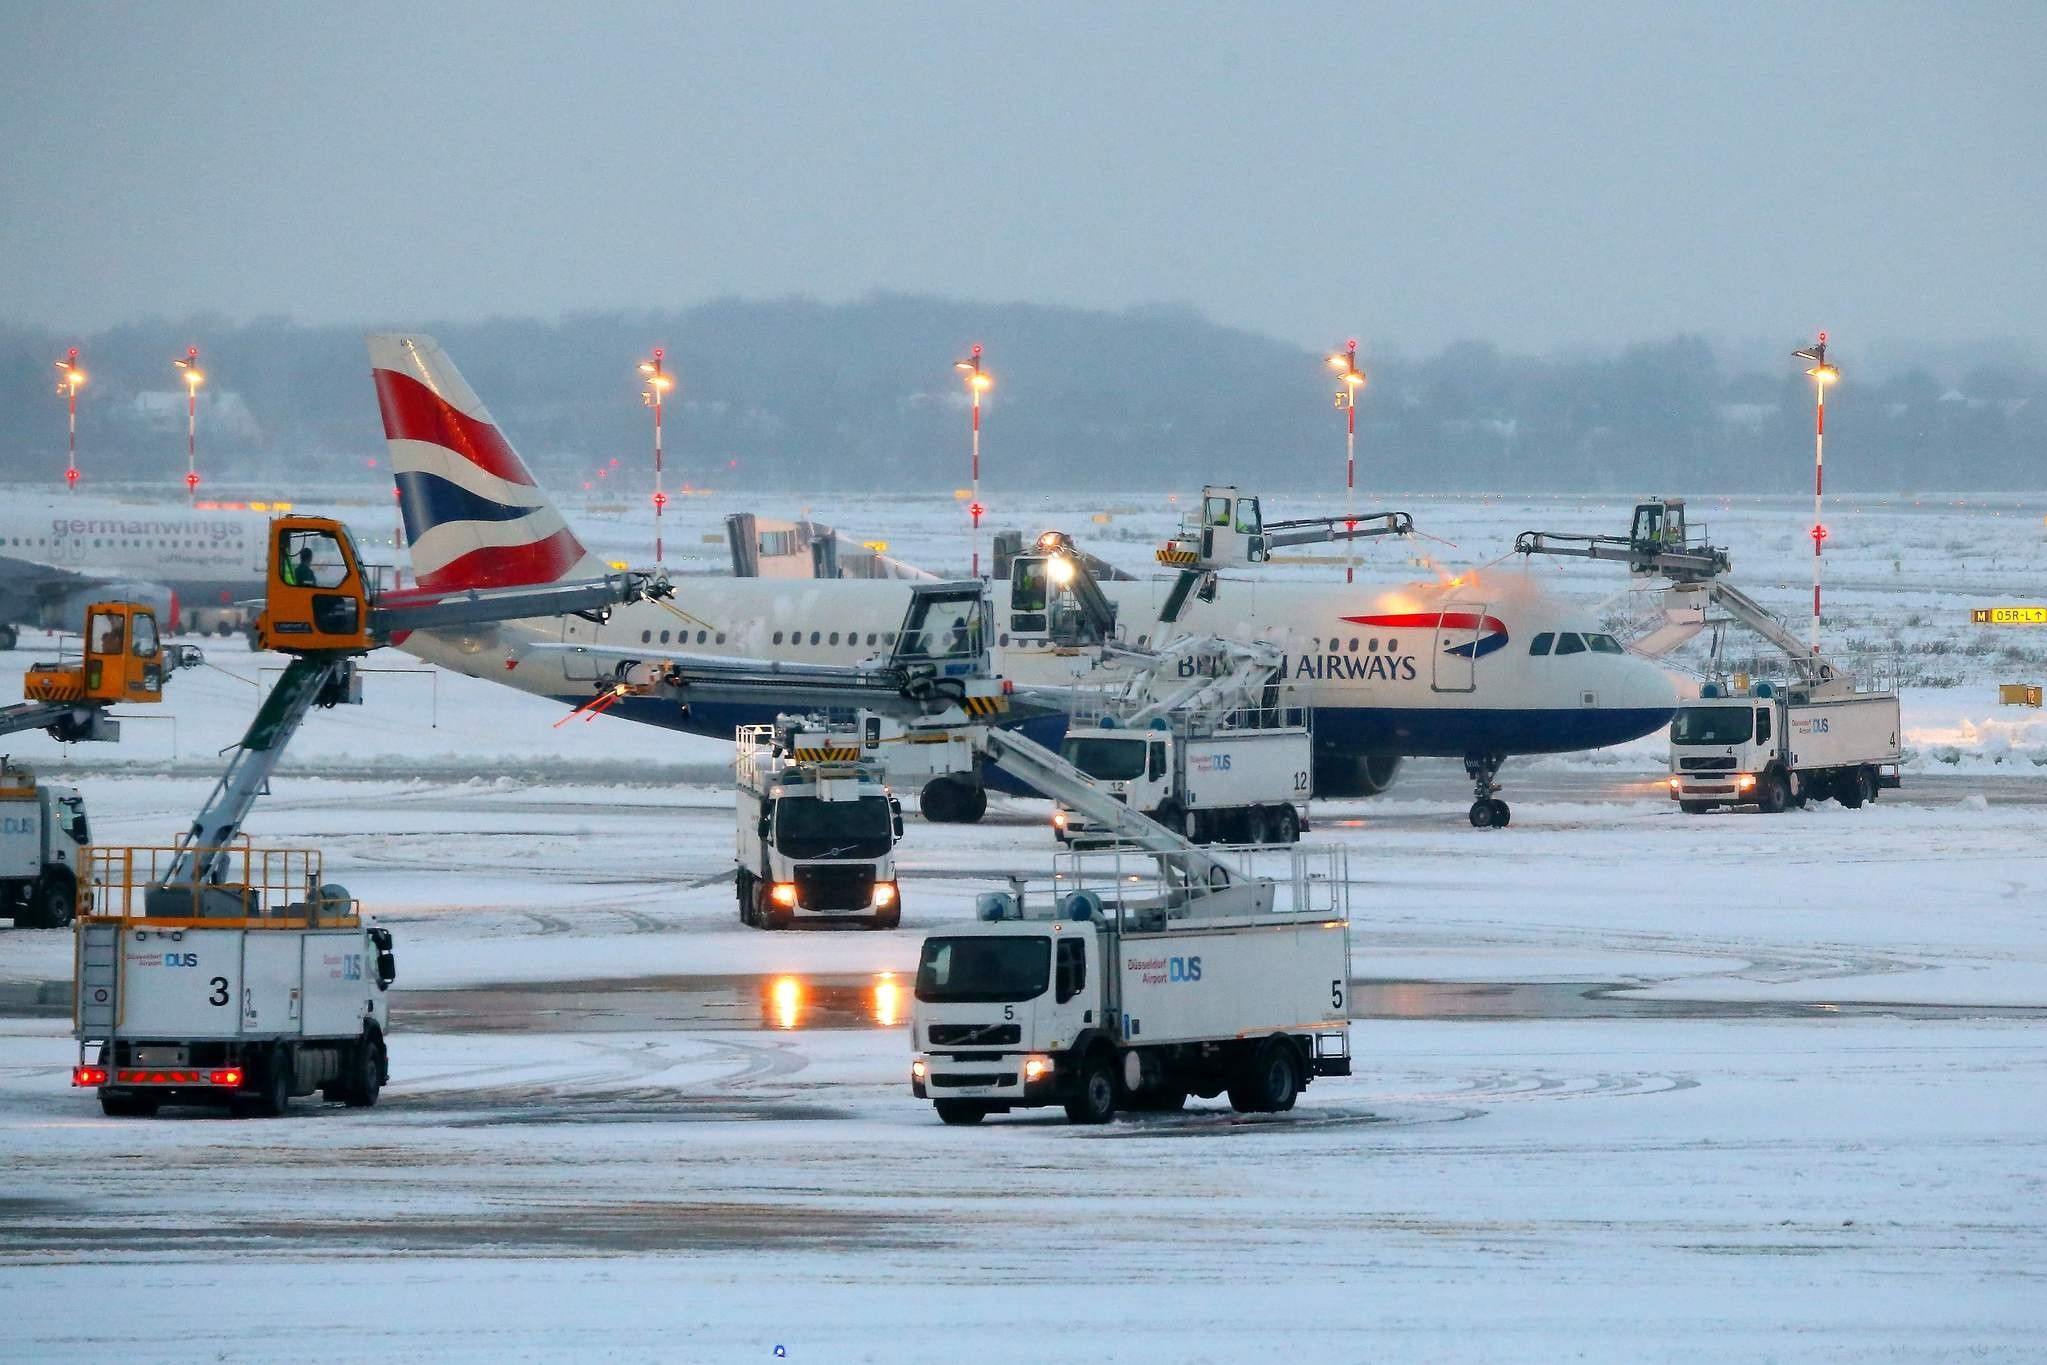 An airplane of British Airways is being de-iced as it stands on the tarmac of the airport in Duesseldorf, western Germany, on December 10, 2017. (AFP Photo)